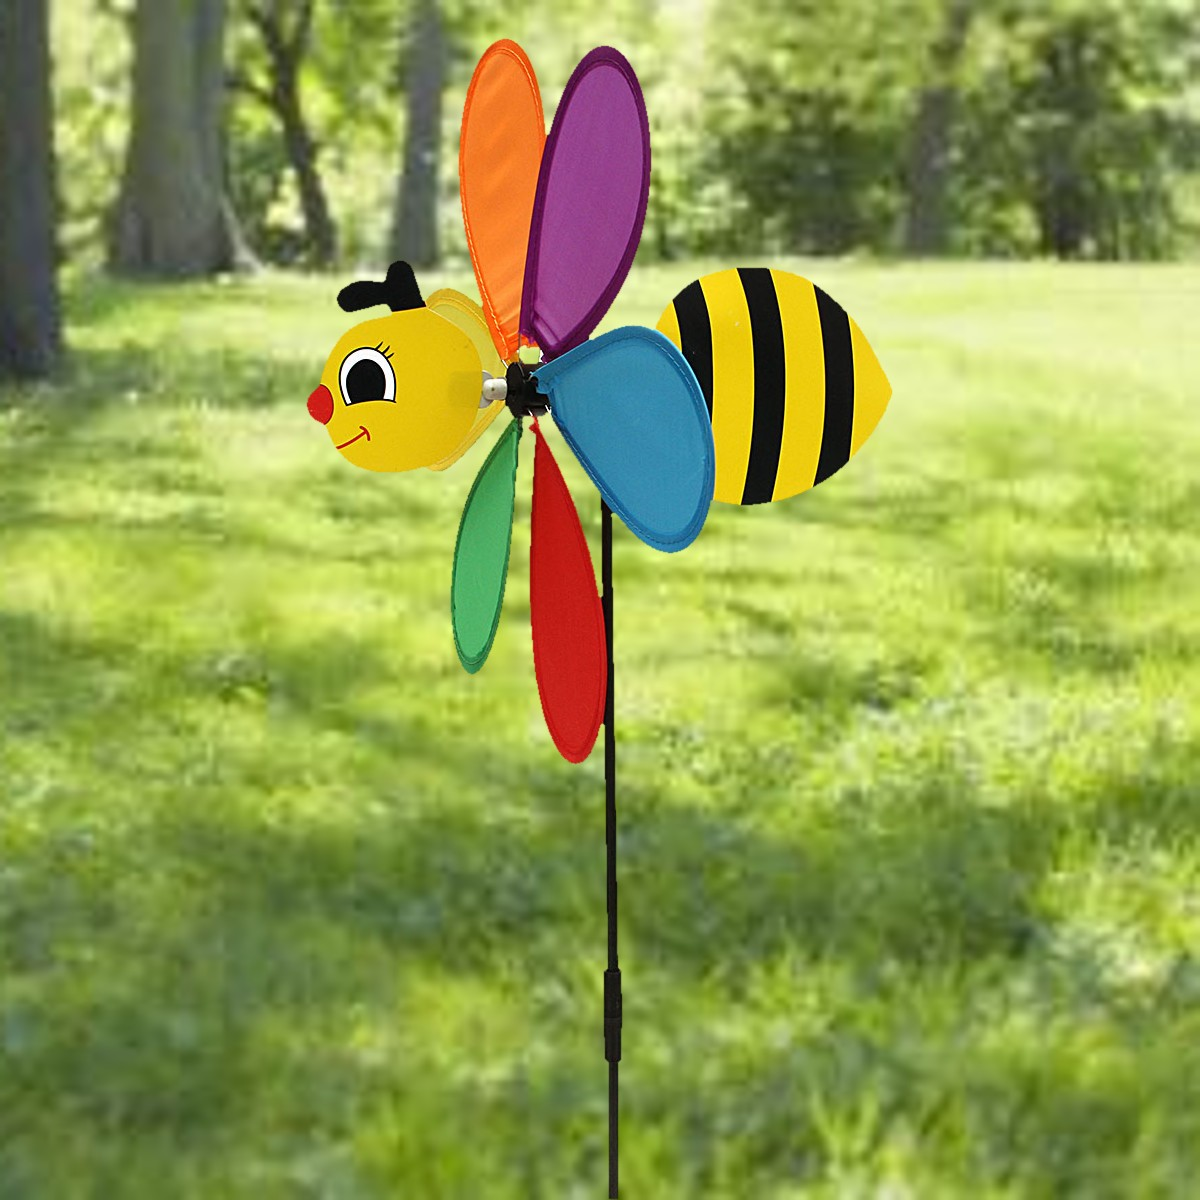 1Pc Animal Bee Windmill Wind Spinner Whirligig Garden Lawn Camping  Decorative Crafts Accessories Kids Outdoor Toys